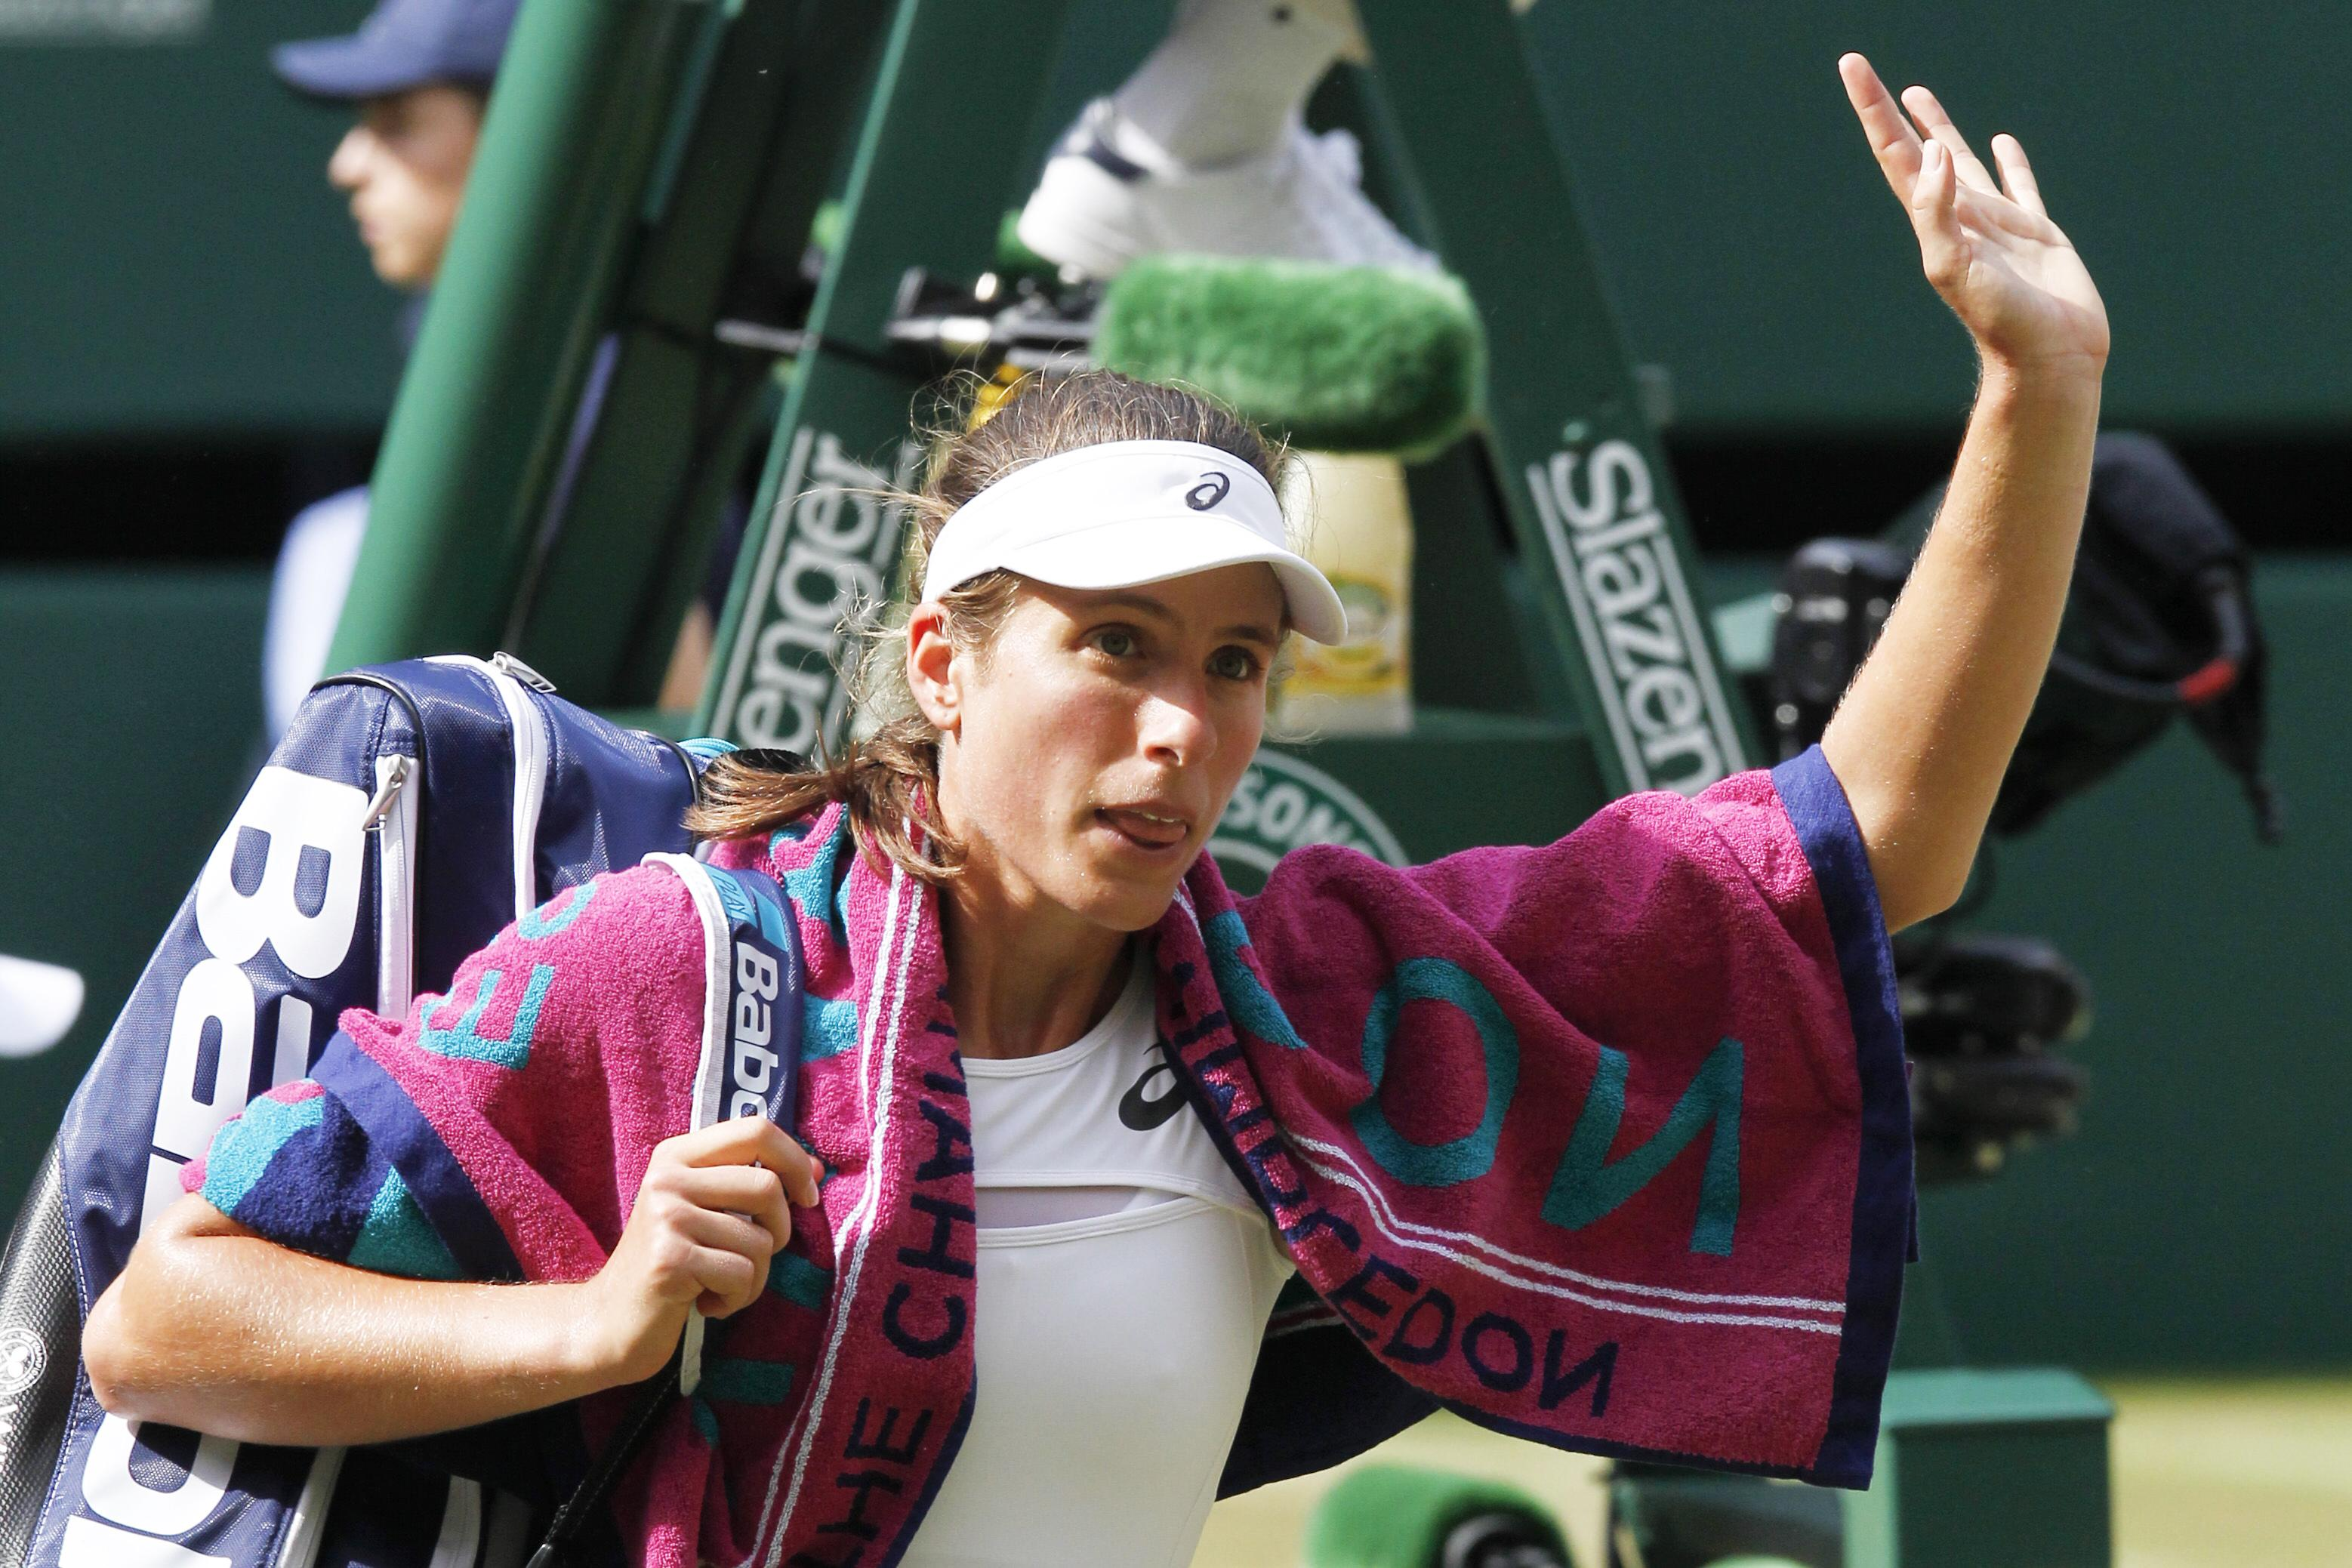 Konta made it to the Wimbledon semi-finals last year before finally being knocked-out by Venus Williams